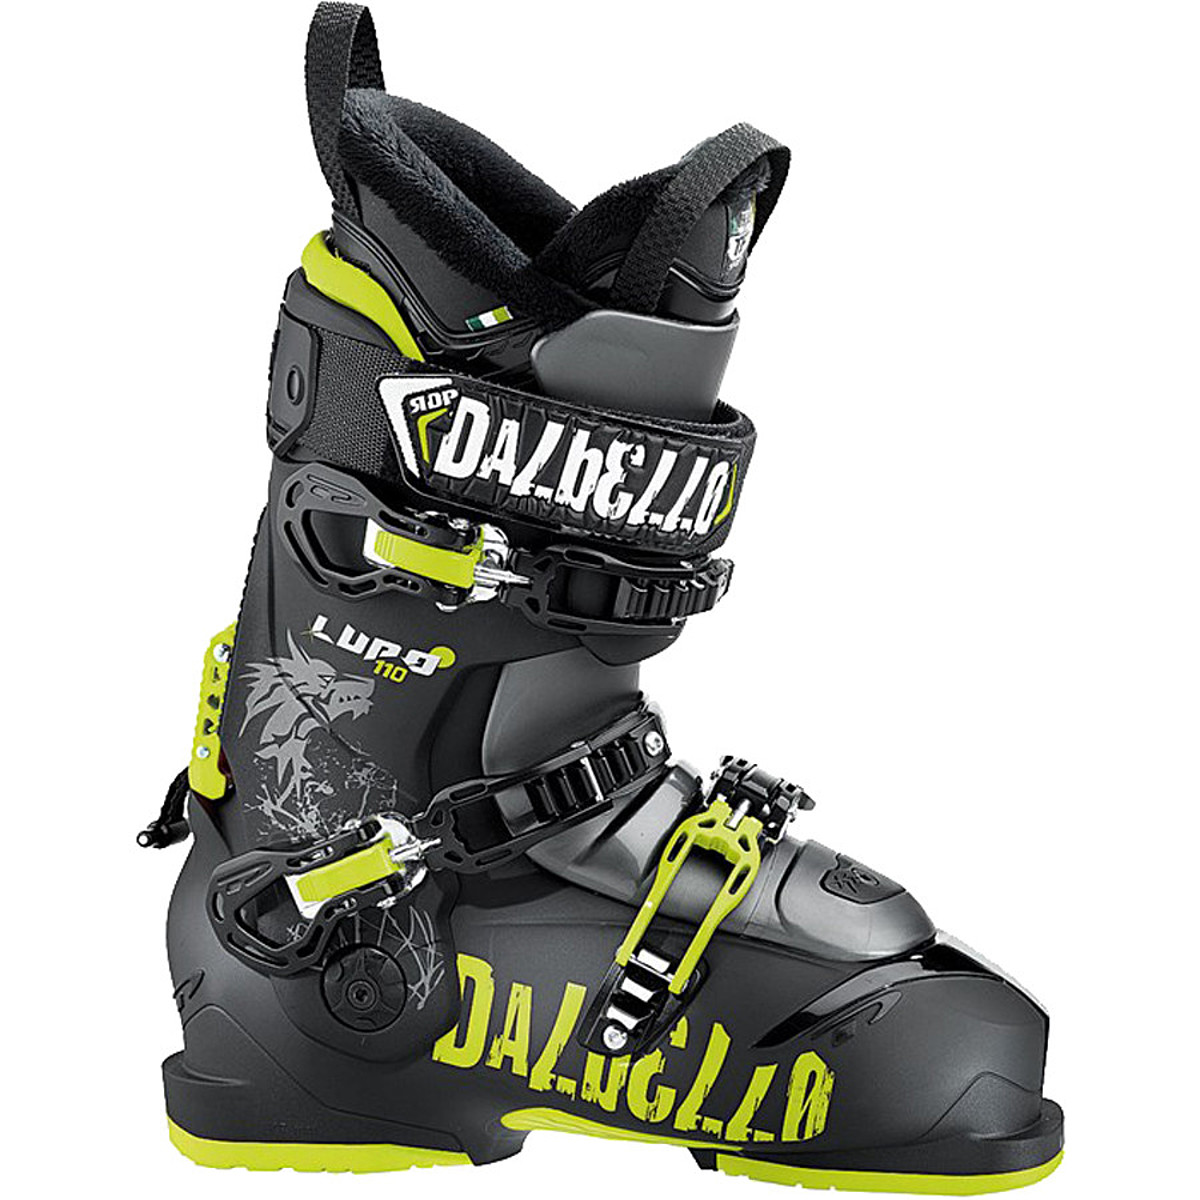 Dalbello Lupo 110 Ski Boot